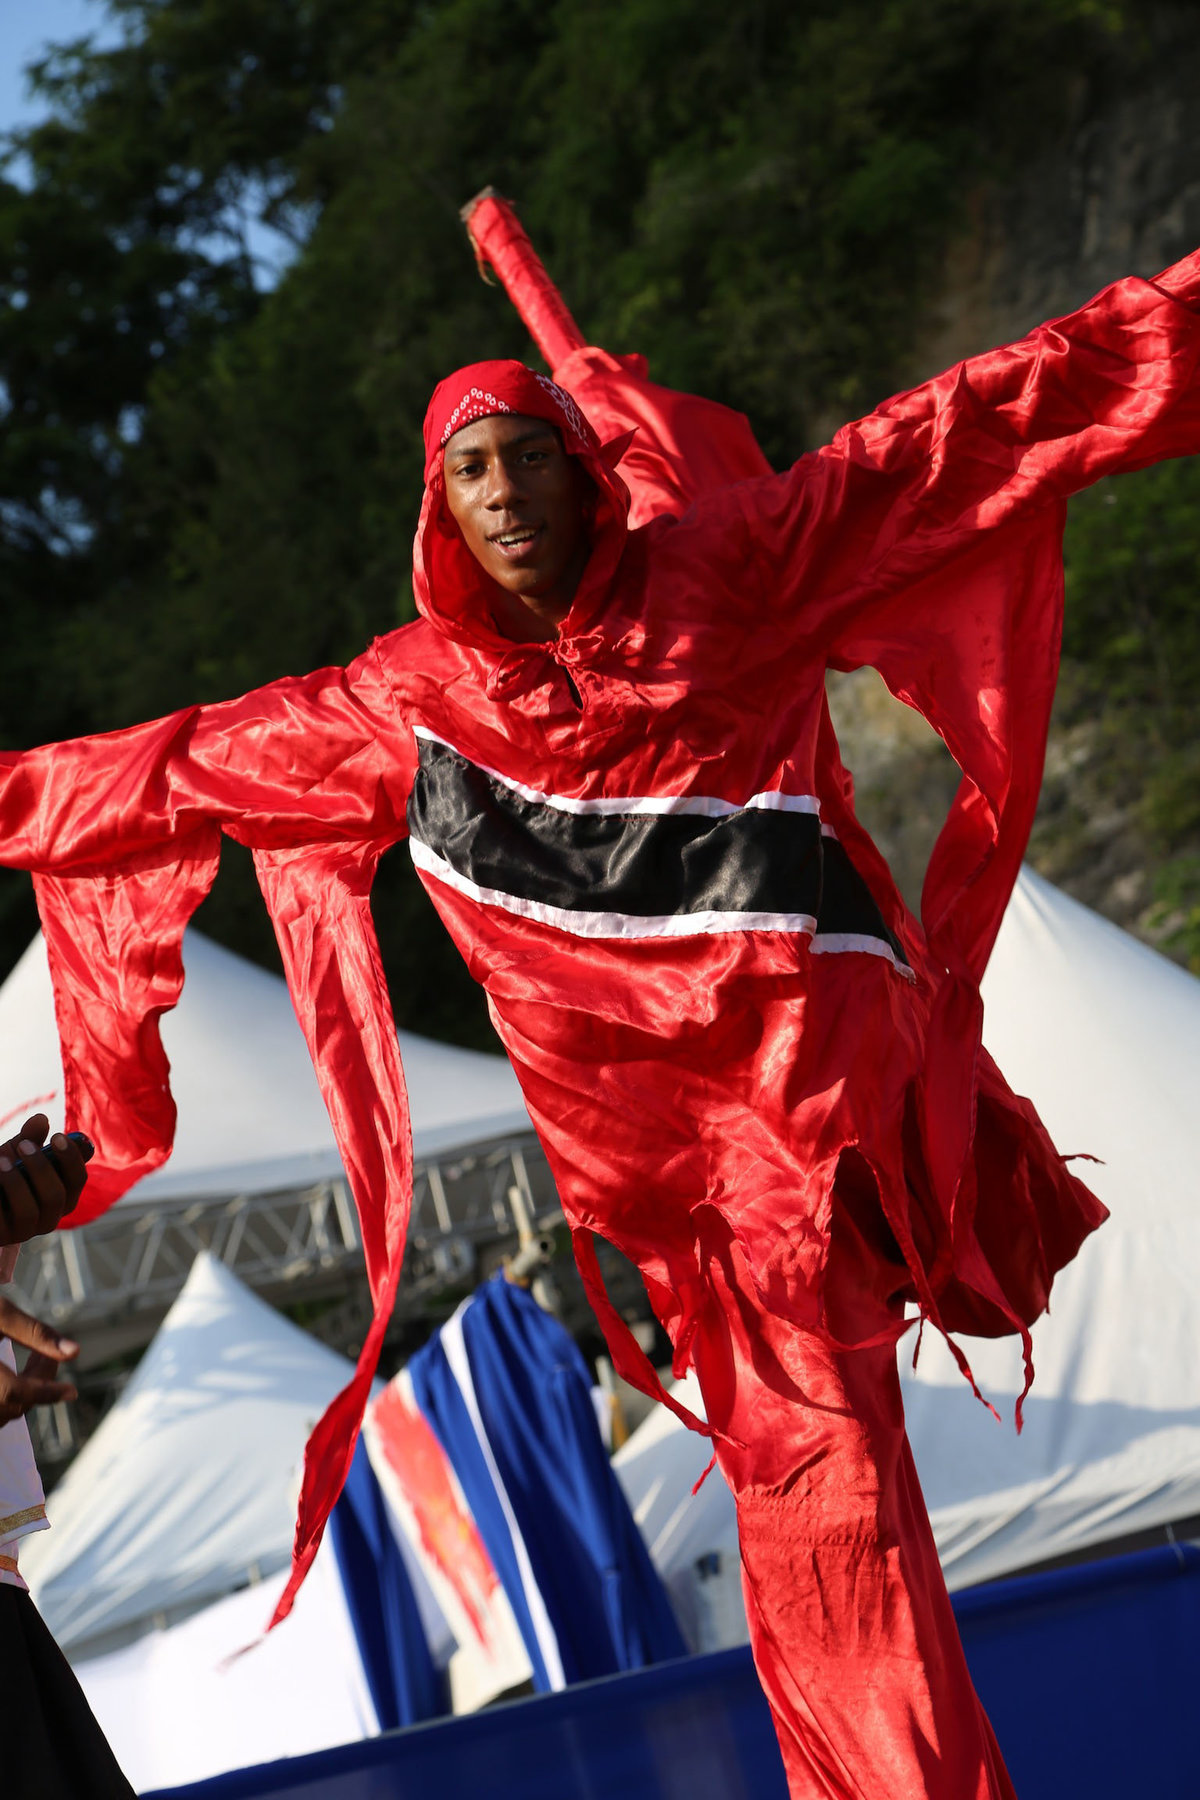 A traditional Trinidadian moko jumbie (stilt walker) performs a trick while dancing in patriotic costume. Photo by Ross Photography, Trinidad, W.I..